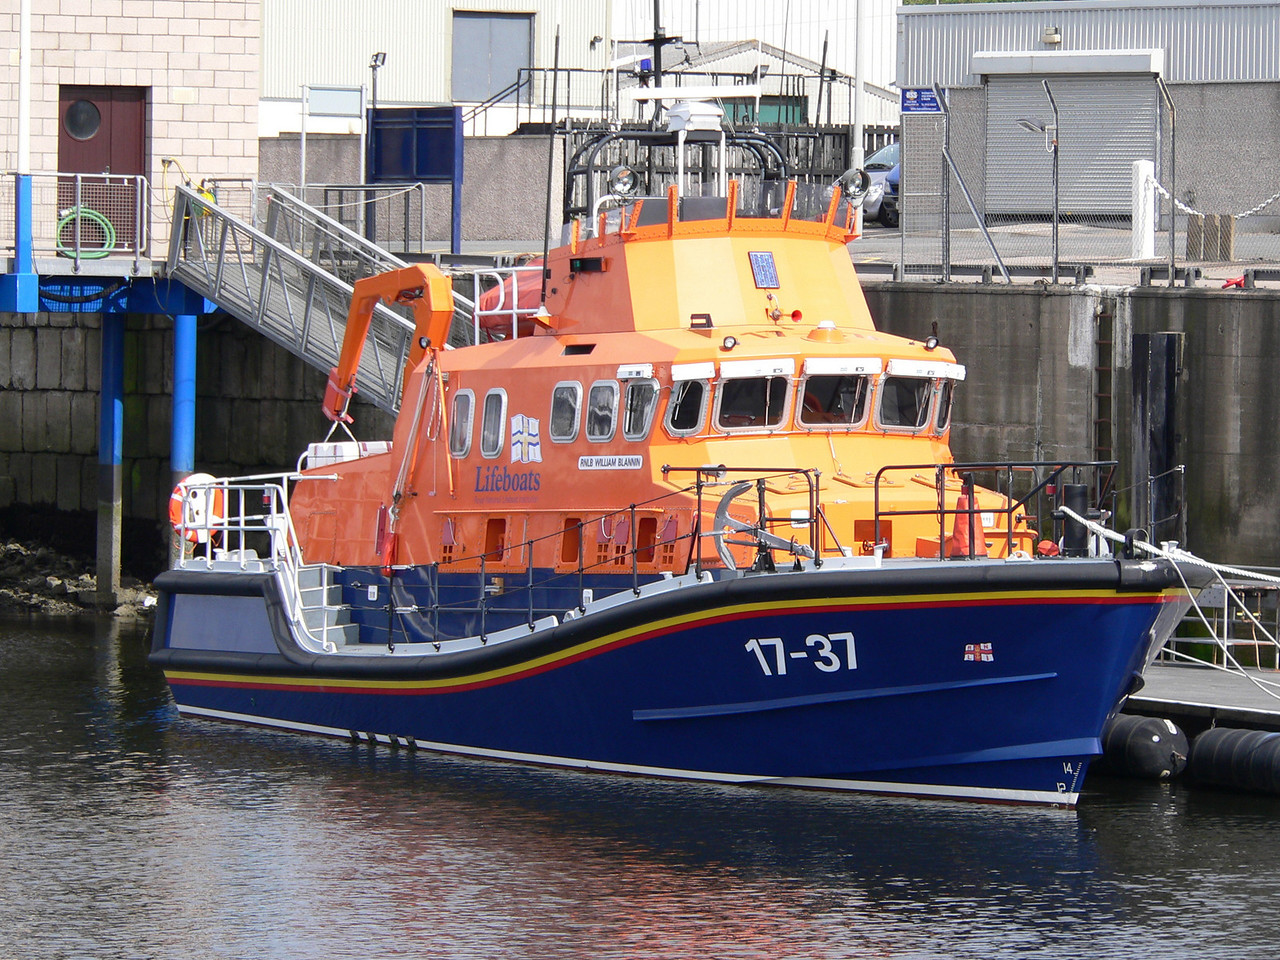 RNLB WILLIAM BLANNIN